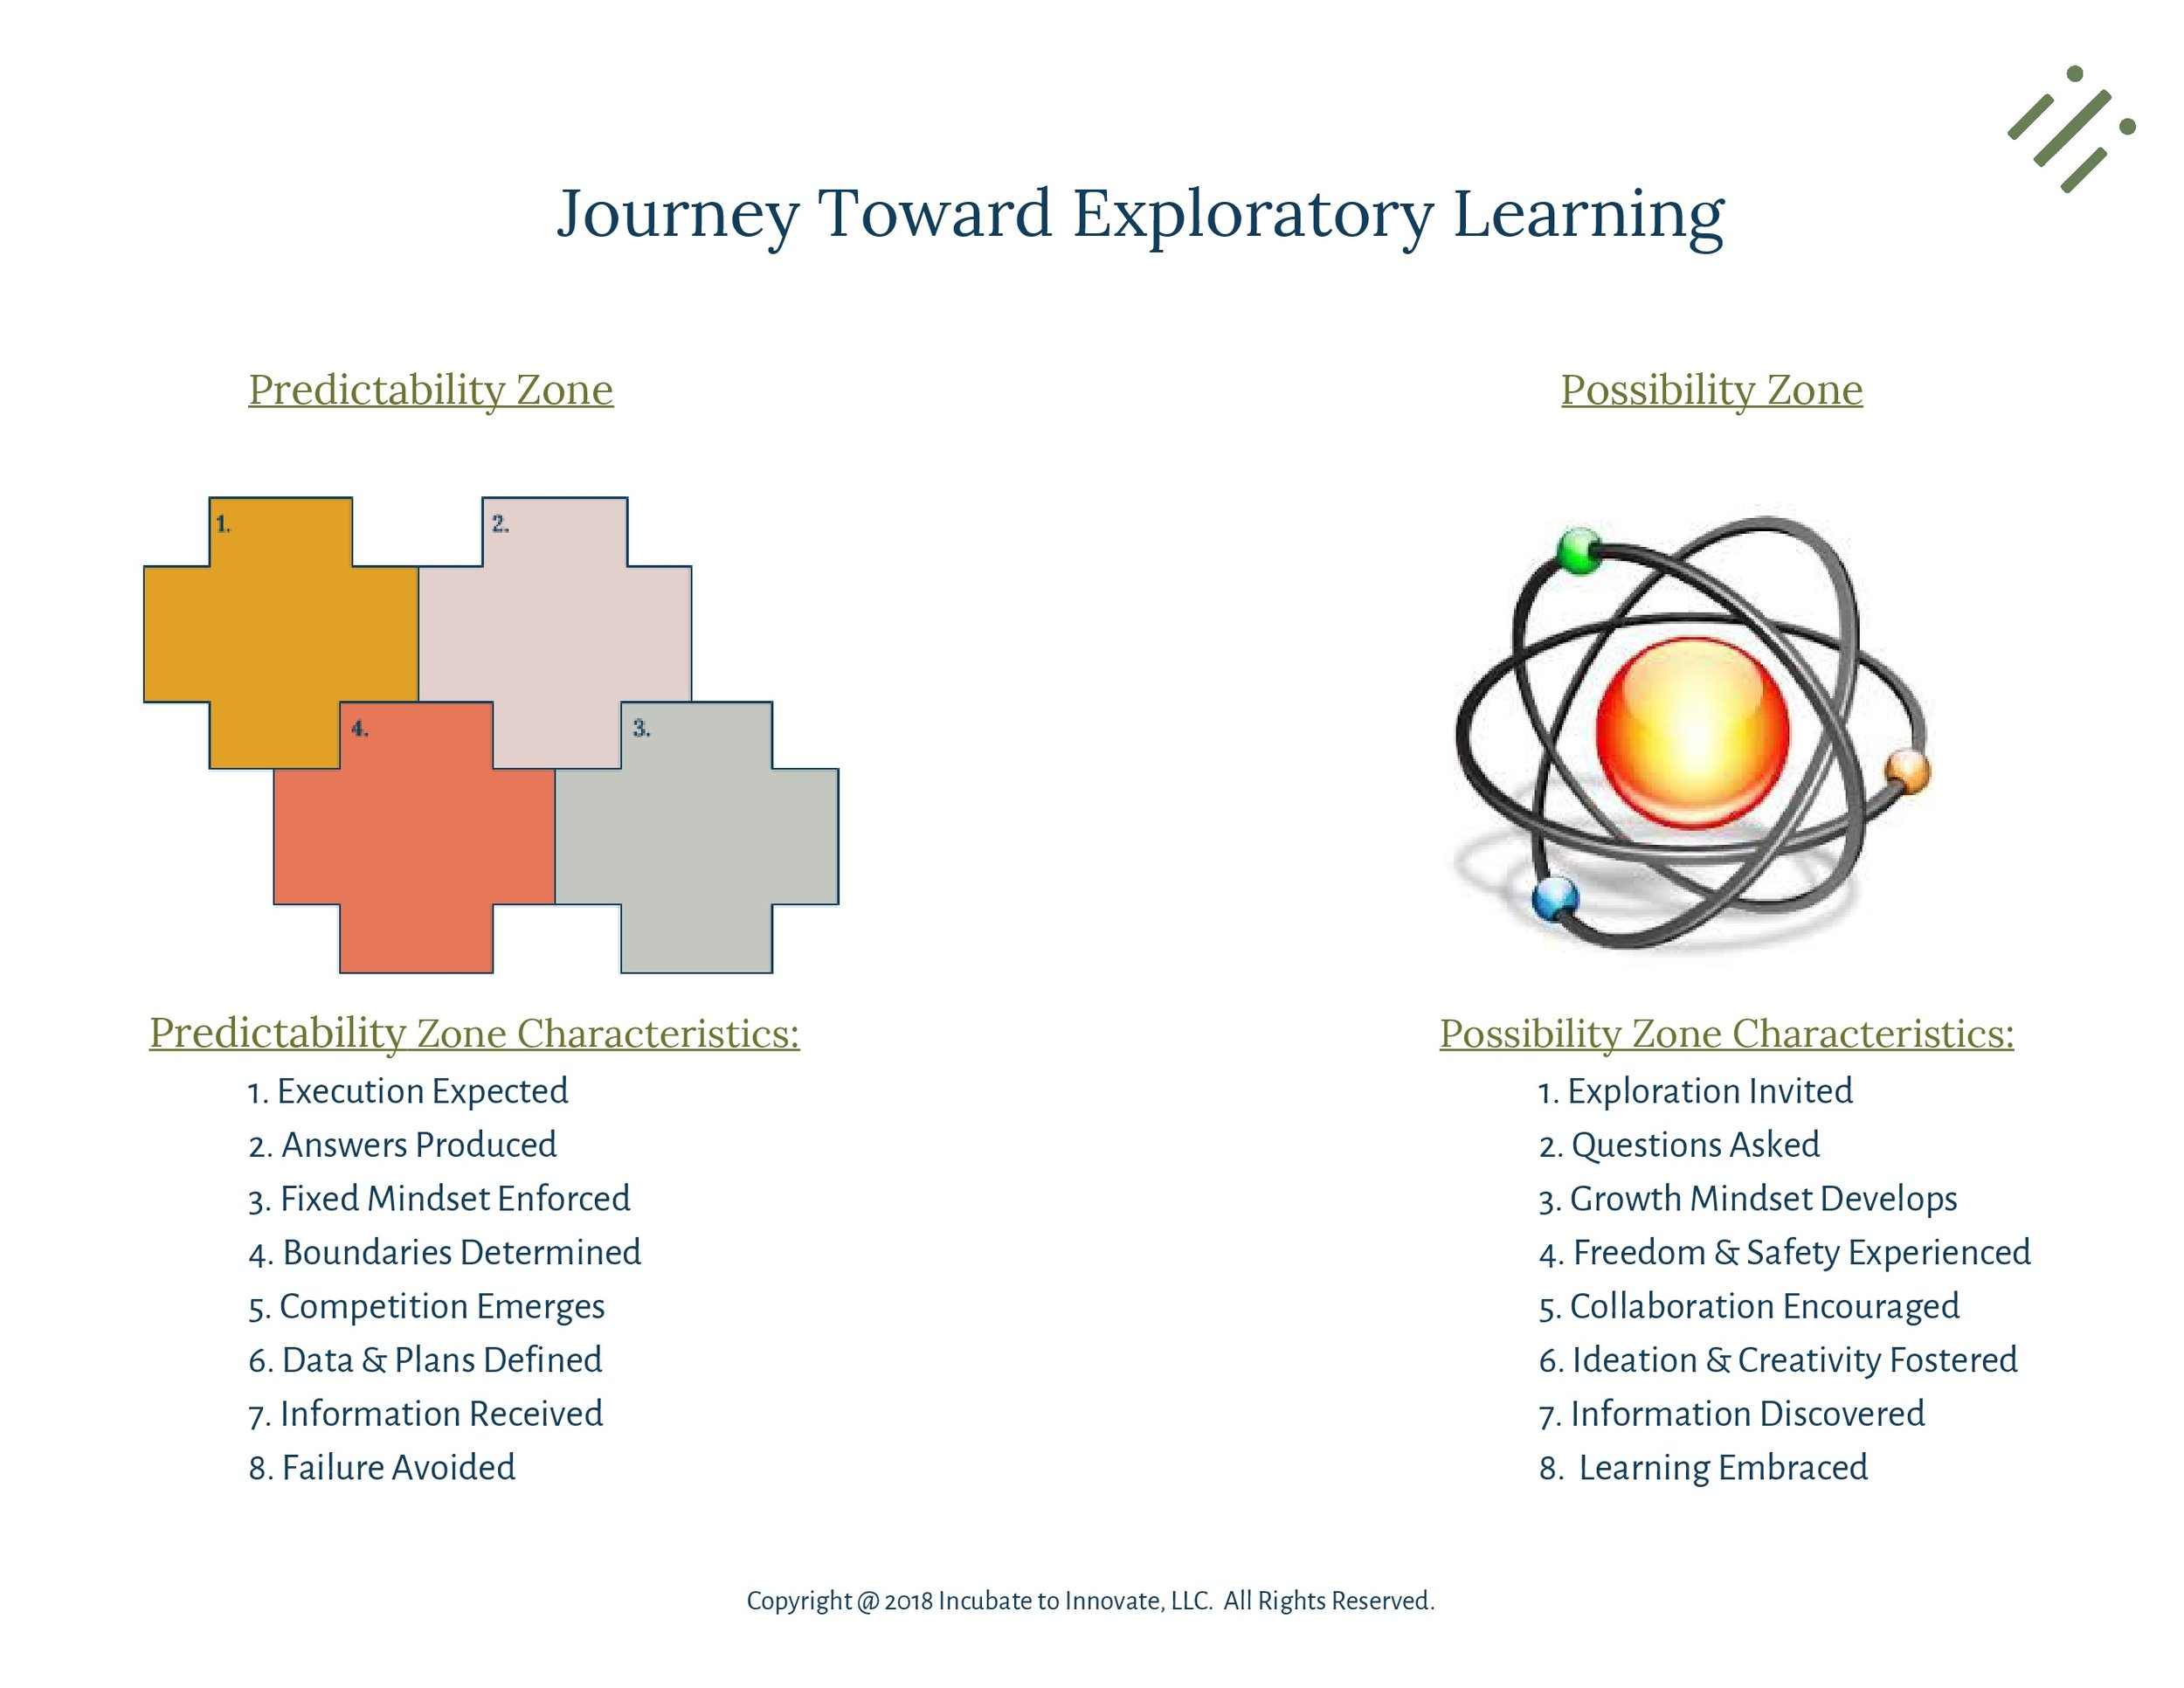 Journey Toward Exploratory Learning.jpg